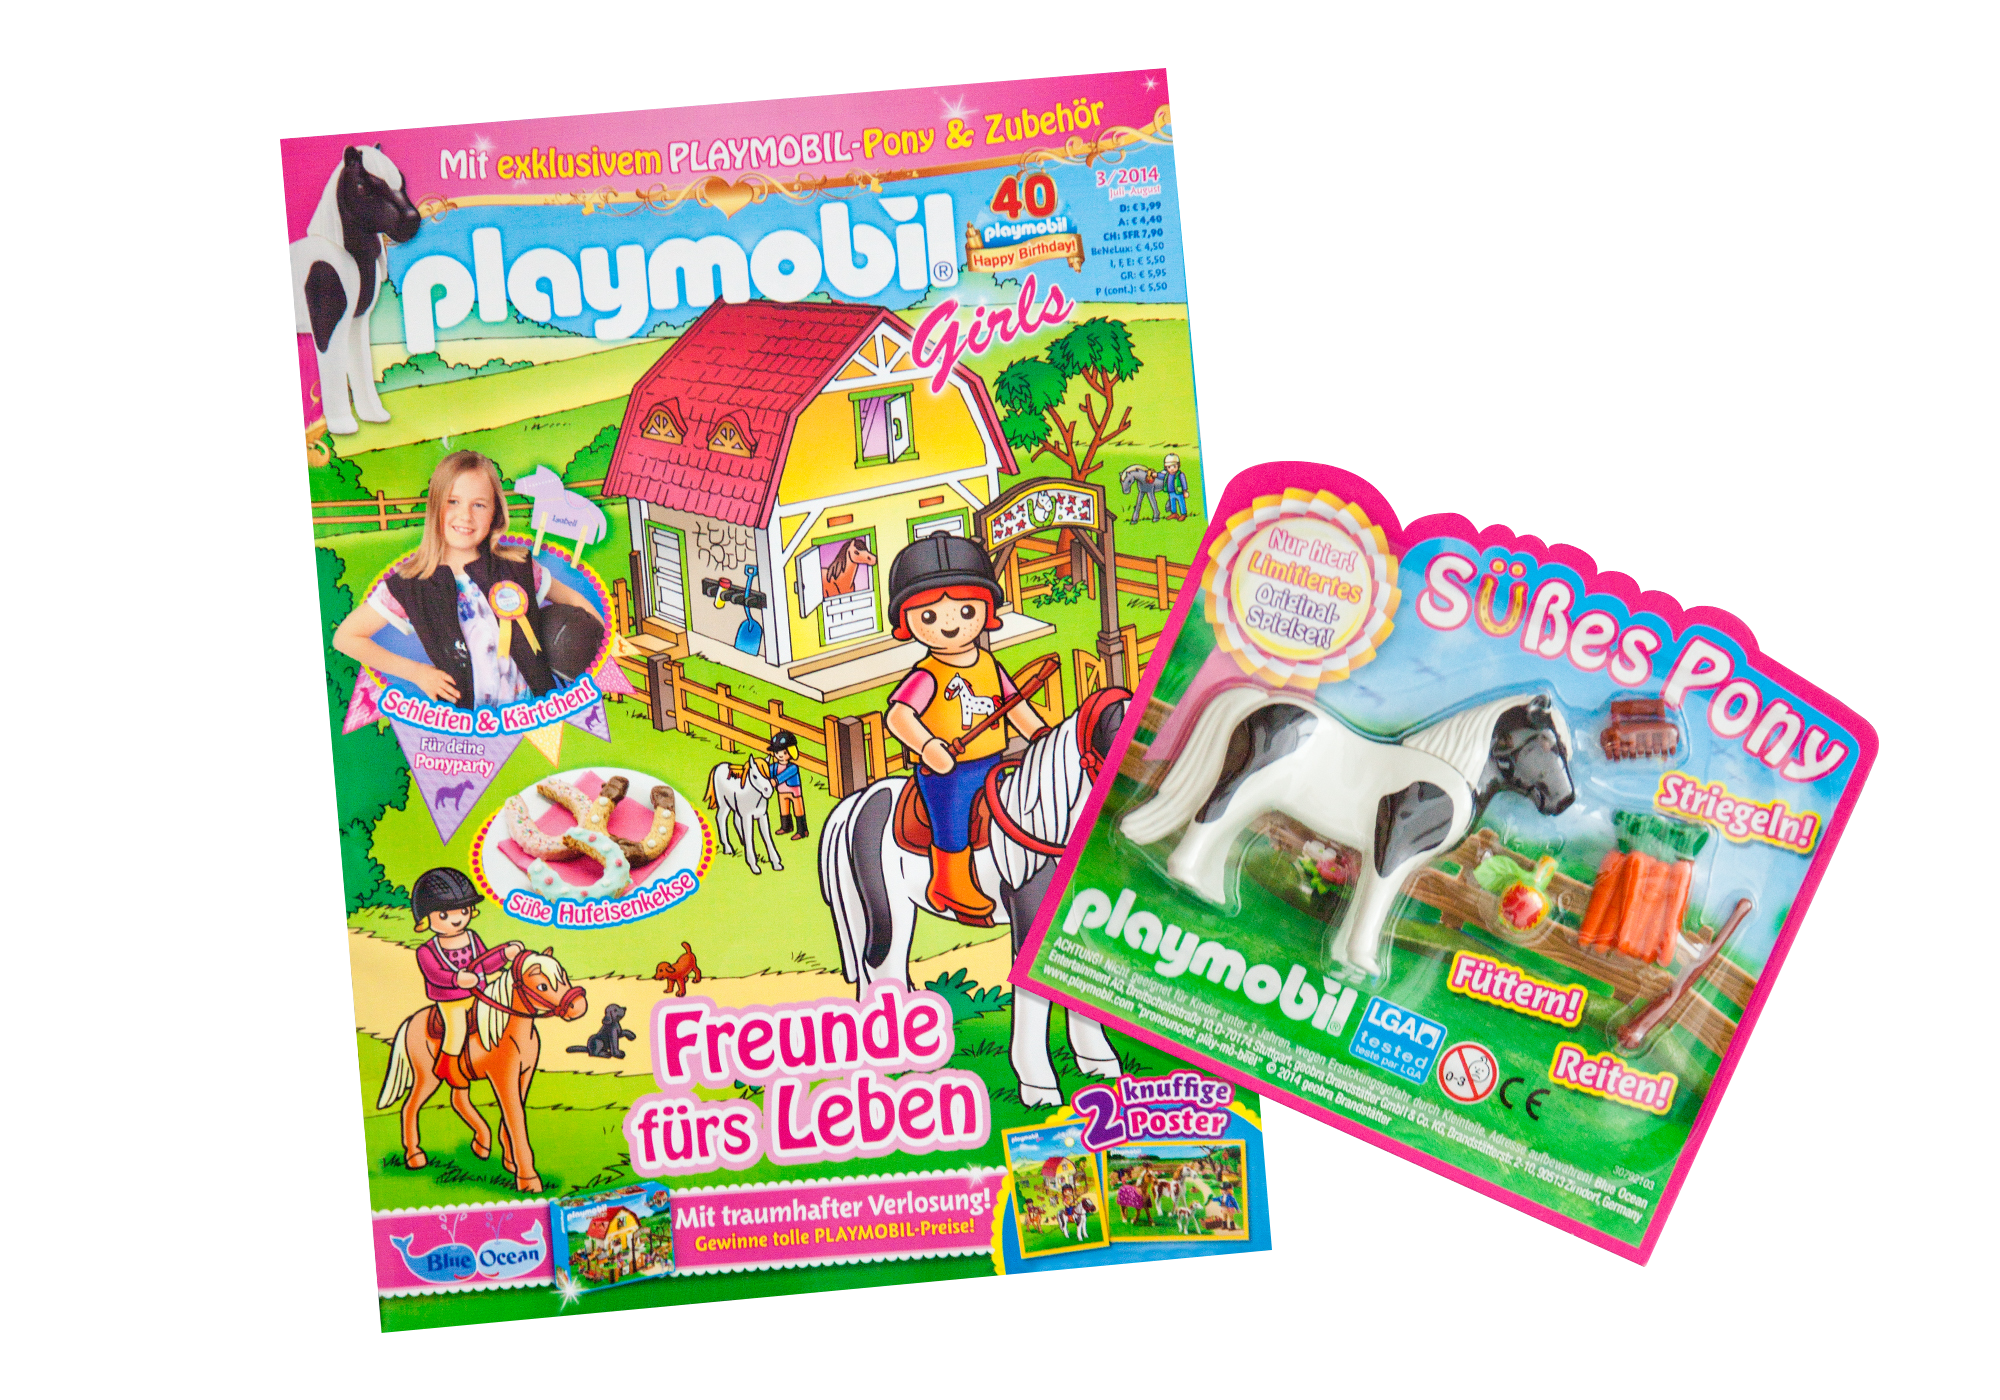 http://media.playmobil.com/i/playmobil/80545_product_detail